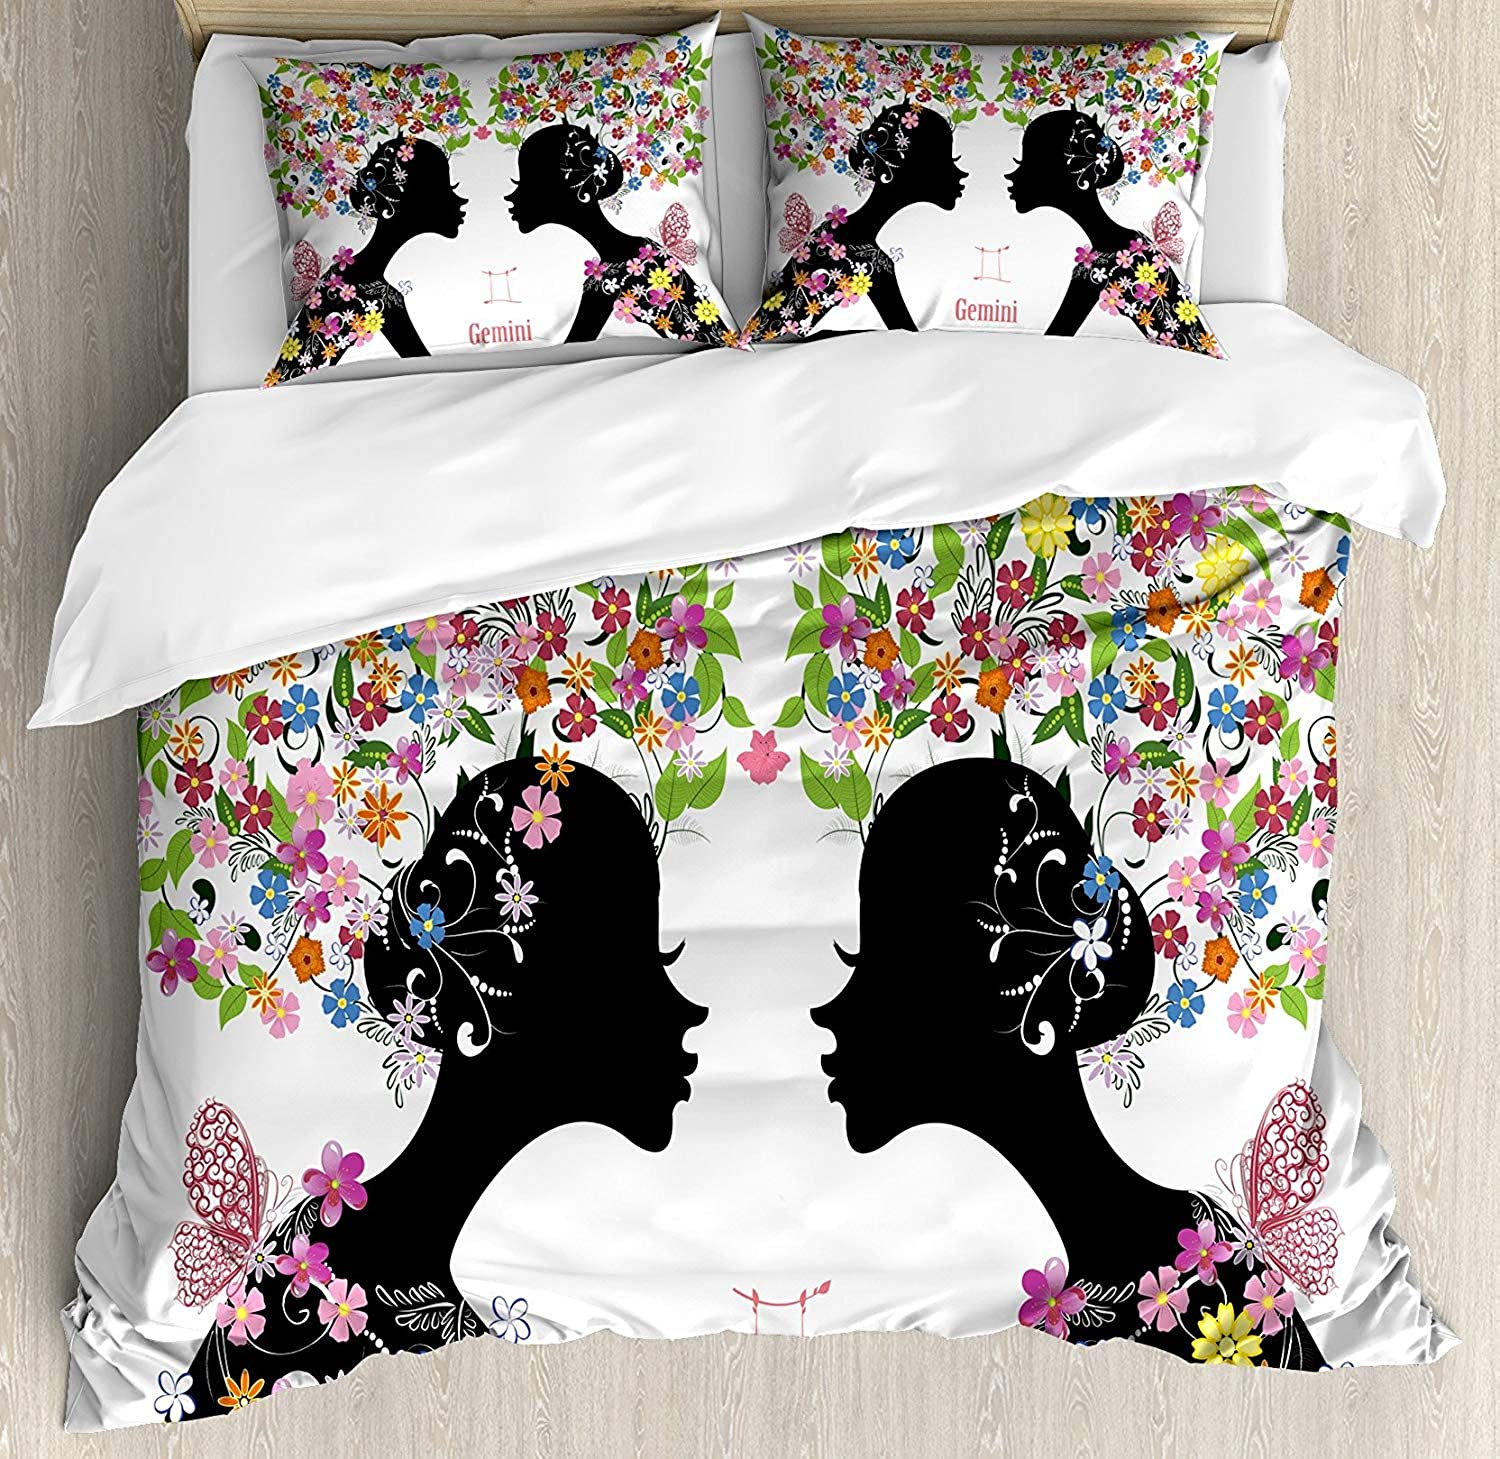 Zodiac Gemini Duvet Cover Set, Luxury Soft Hotel Quality 4 Piece Full Plush Microfiber Bedding Sets, Two Young Ladies with colorful Spring Blossoms and Butterflies Fashion Girls